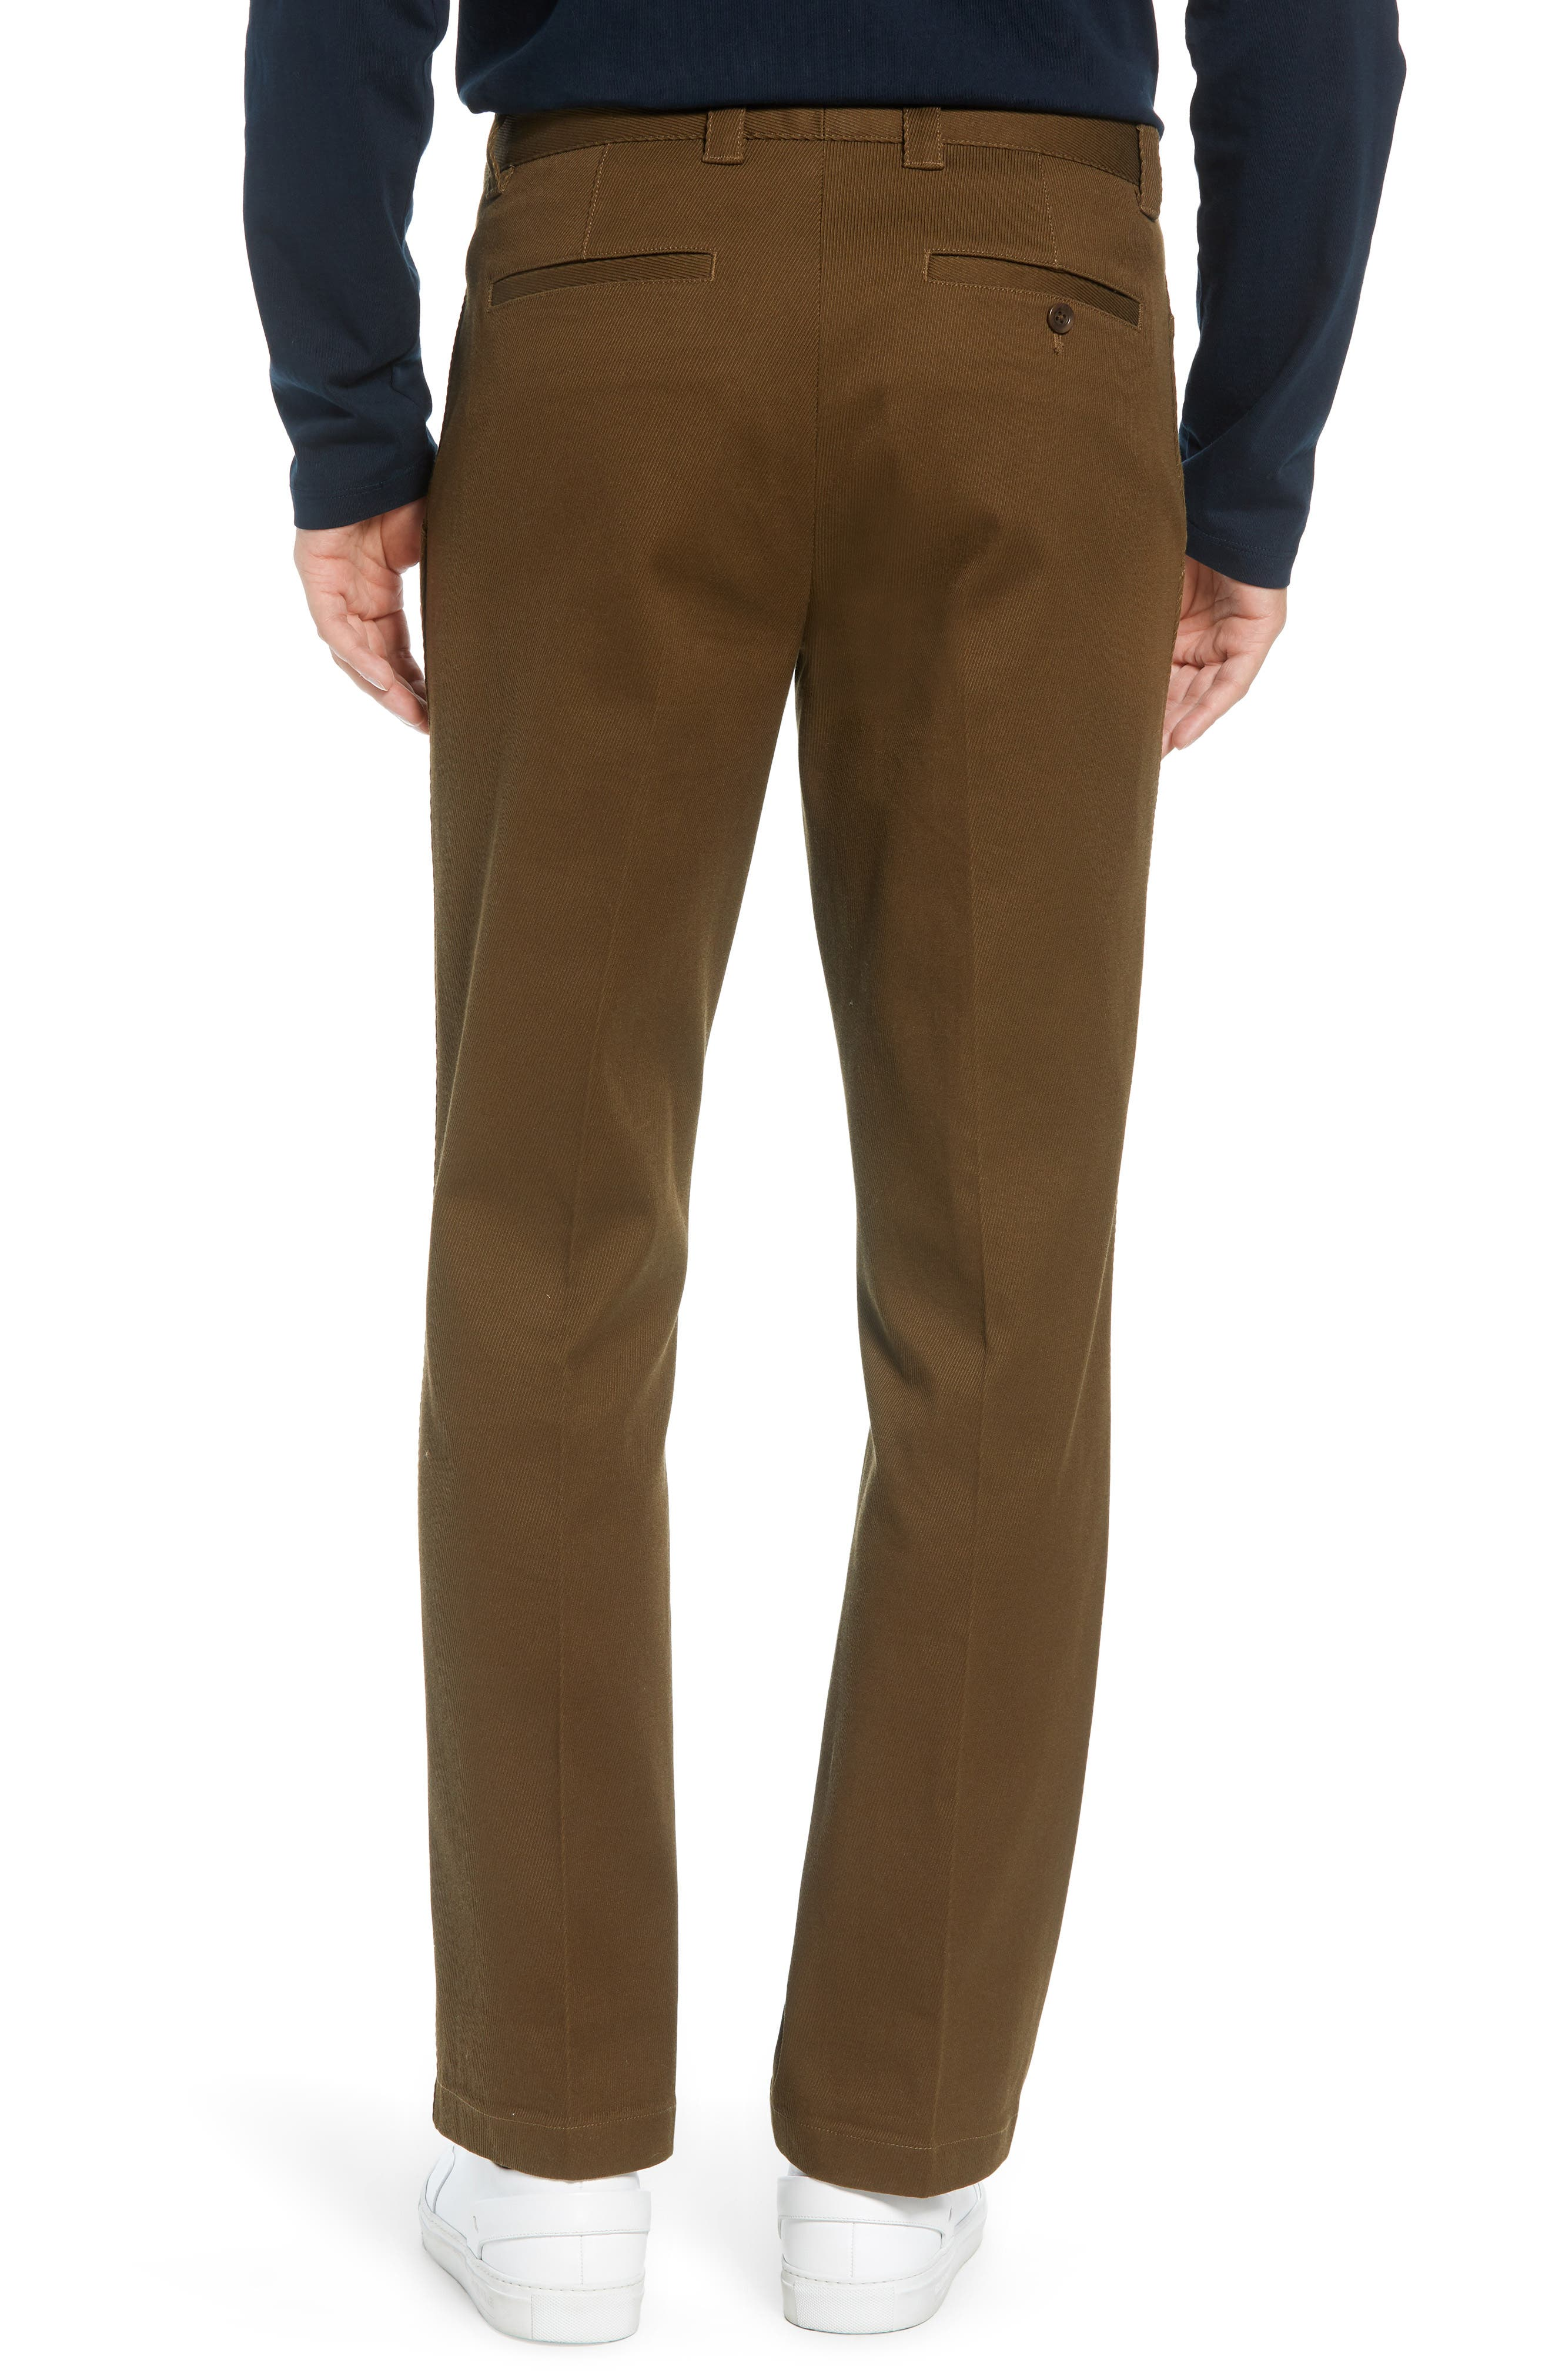 Stay Pressed Classic Fit Pants,                             Alternate thumbnail 2, color,                             INFANTRY GREEN